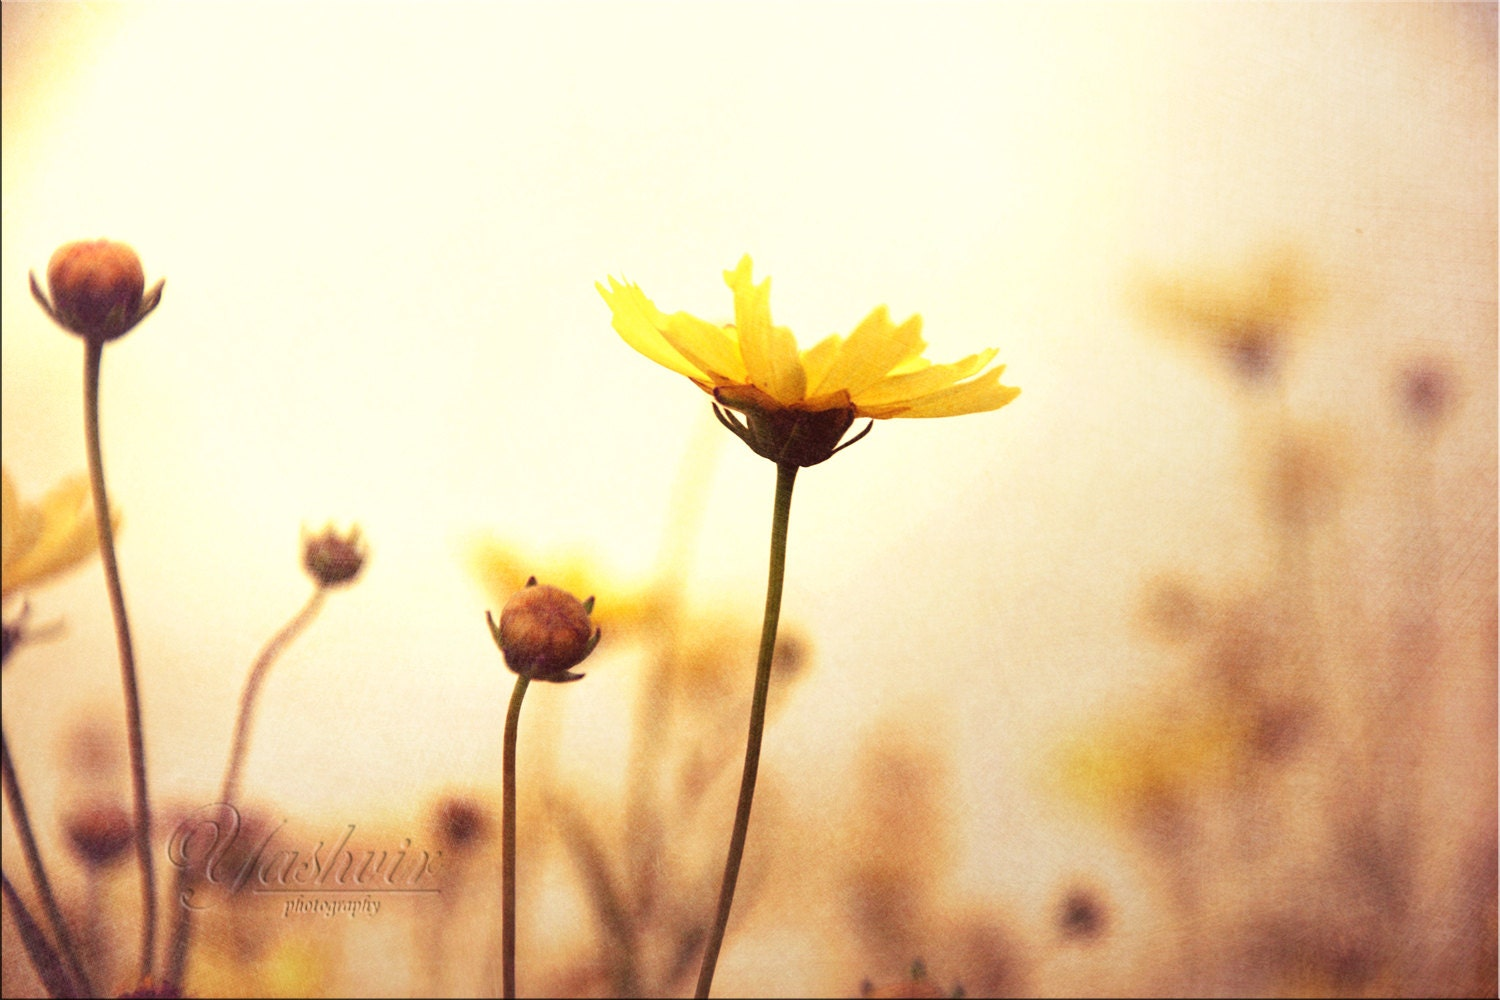 Dreamy Day - Photography print of flowers.  Enchanted and romantic. Yellow and white, wall art, home decor - Yashvir